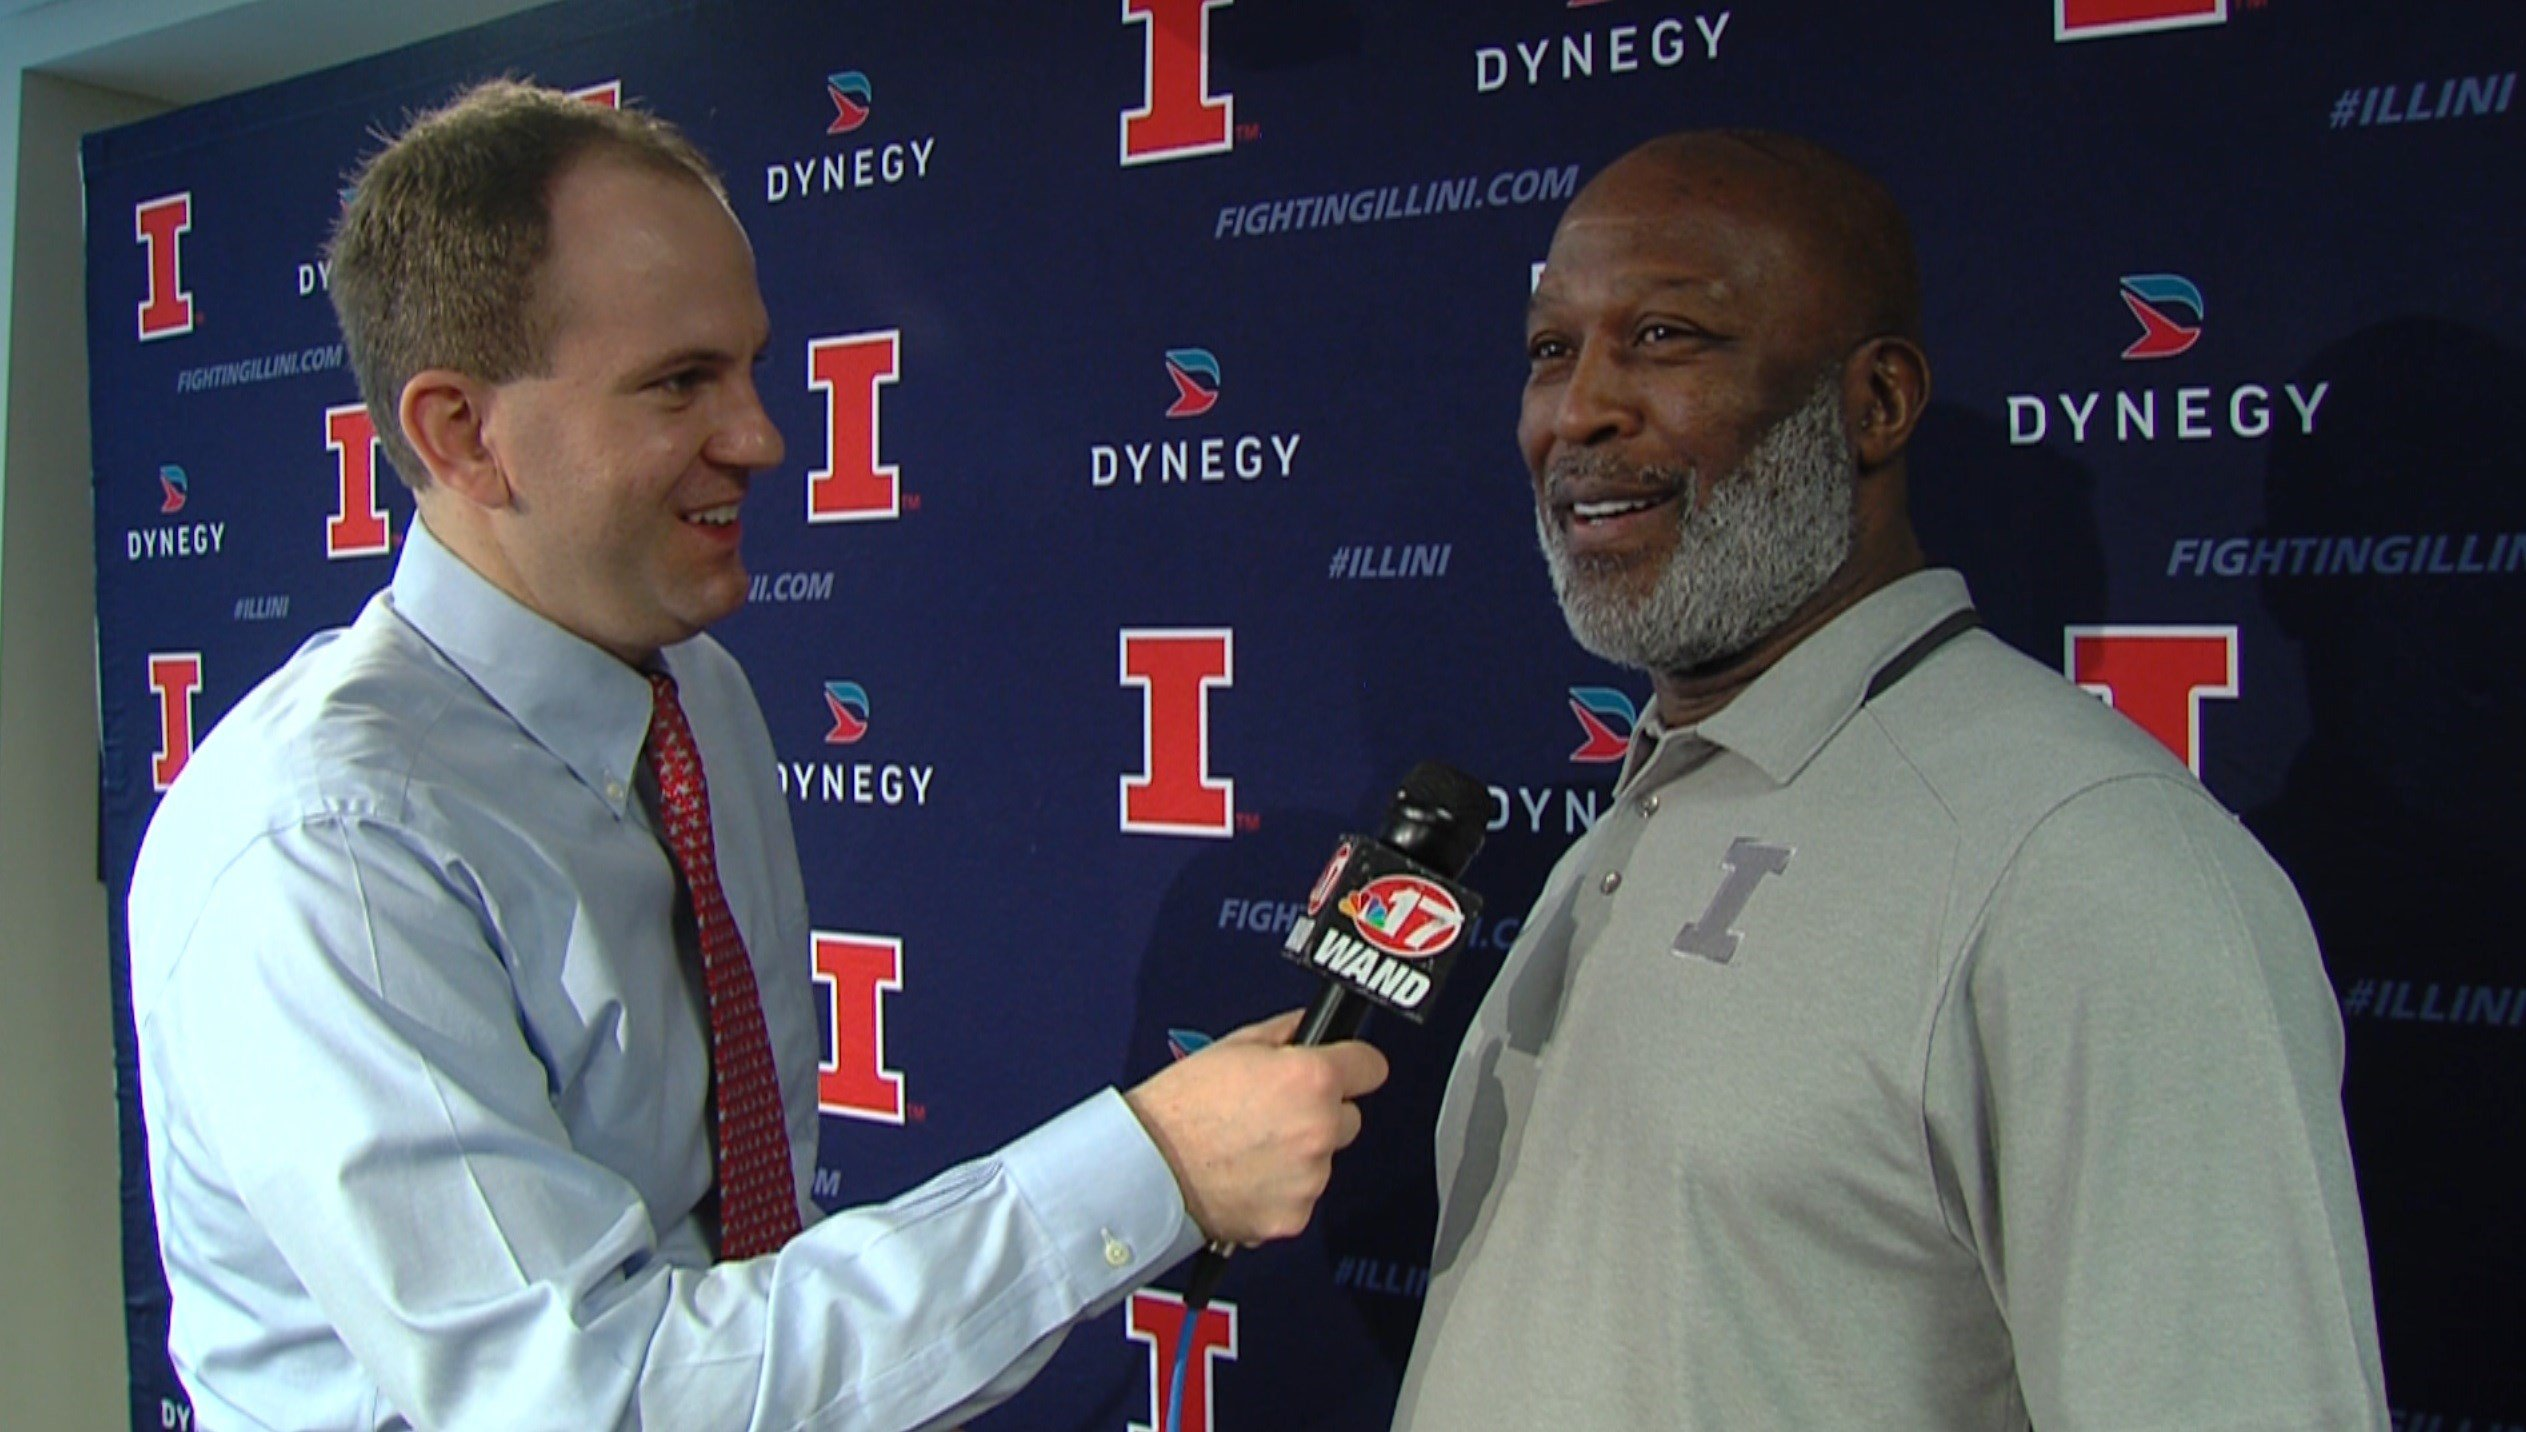 Lovie Smith said that what made Brian Urlacher a bona fide first-ballot Hall of Fame linebacker was more than just an across-the-board complete skill set, but the ability to know where every player was supposed to be on the field at all times.